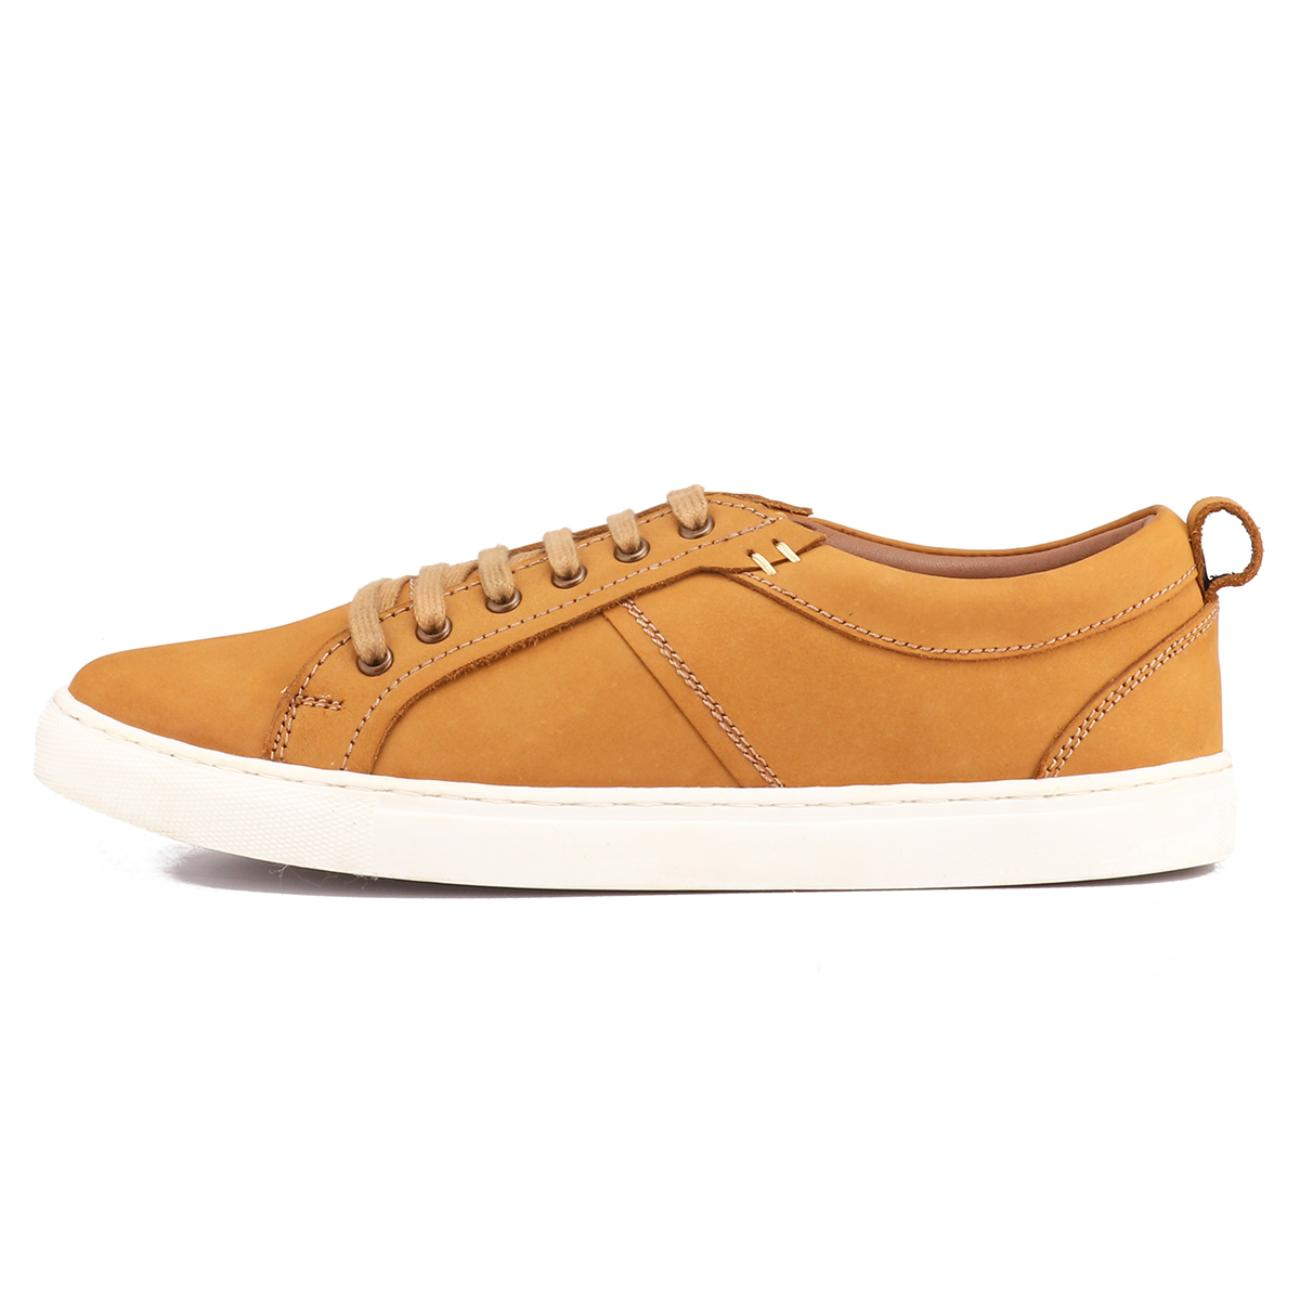 rust casual sneakers from behind